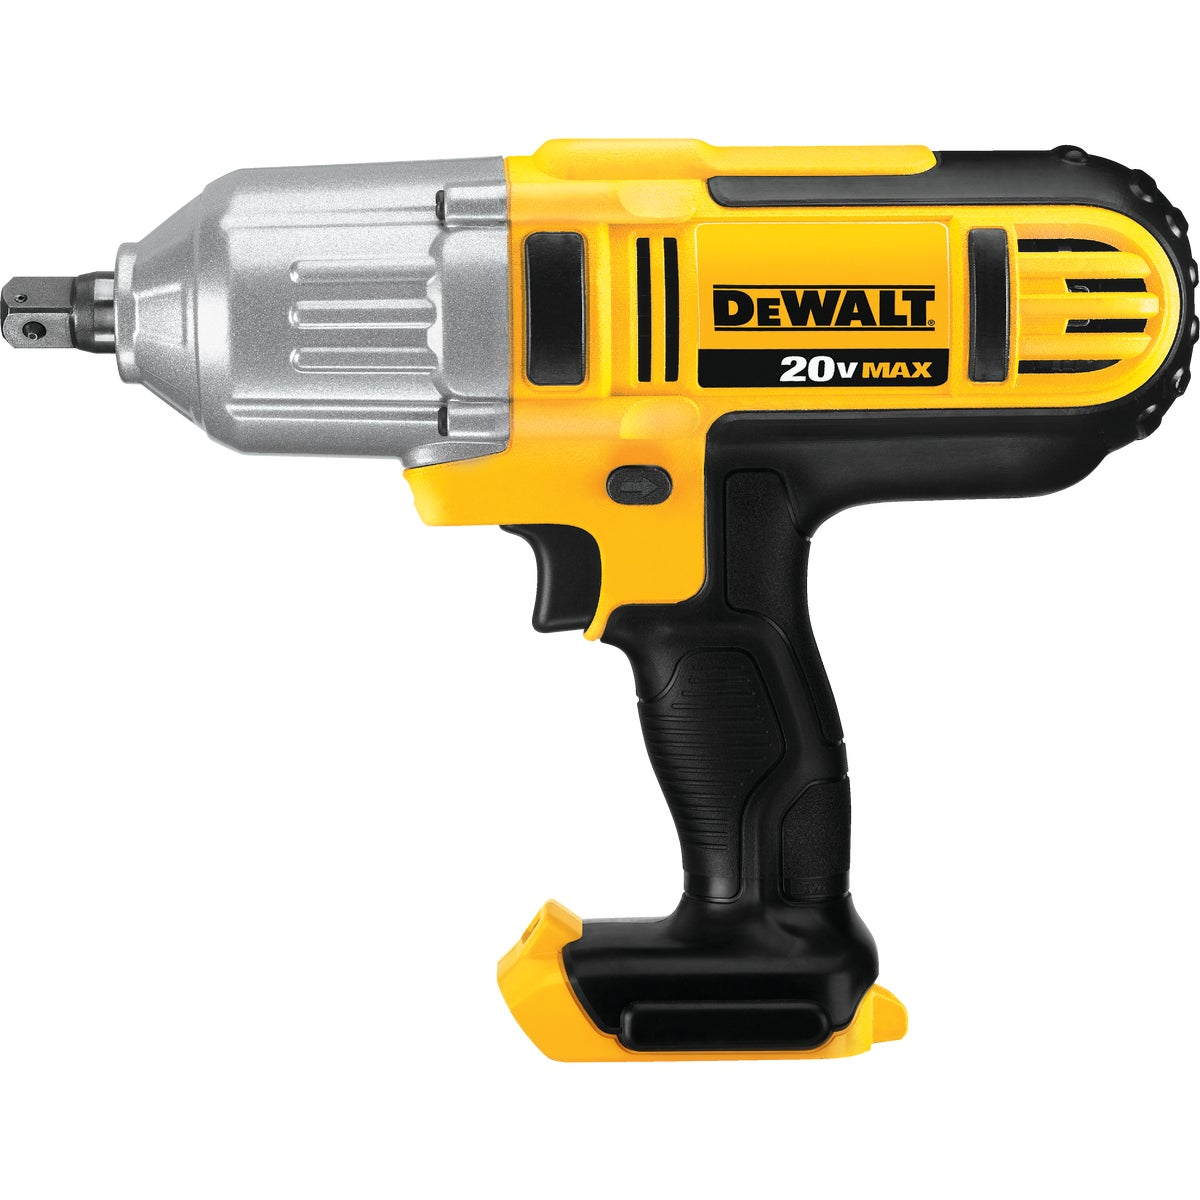 "20V 1/2"" IMPACT WRENCH - DCF889B by DeWalt"